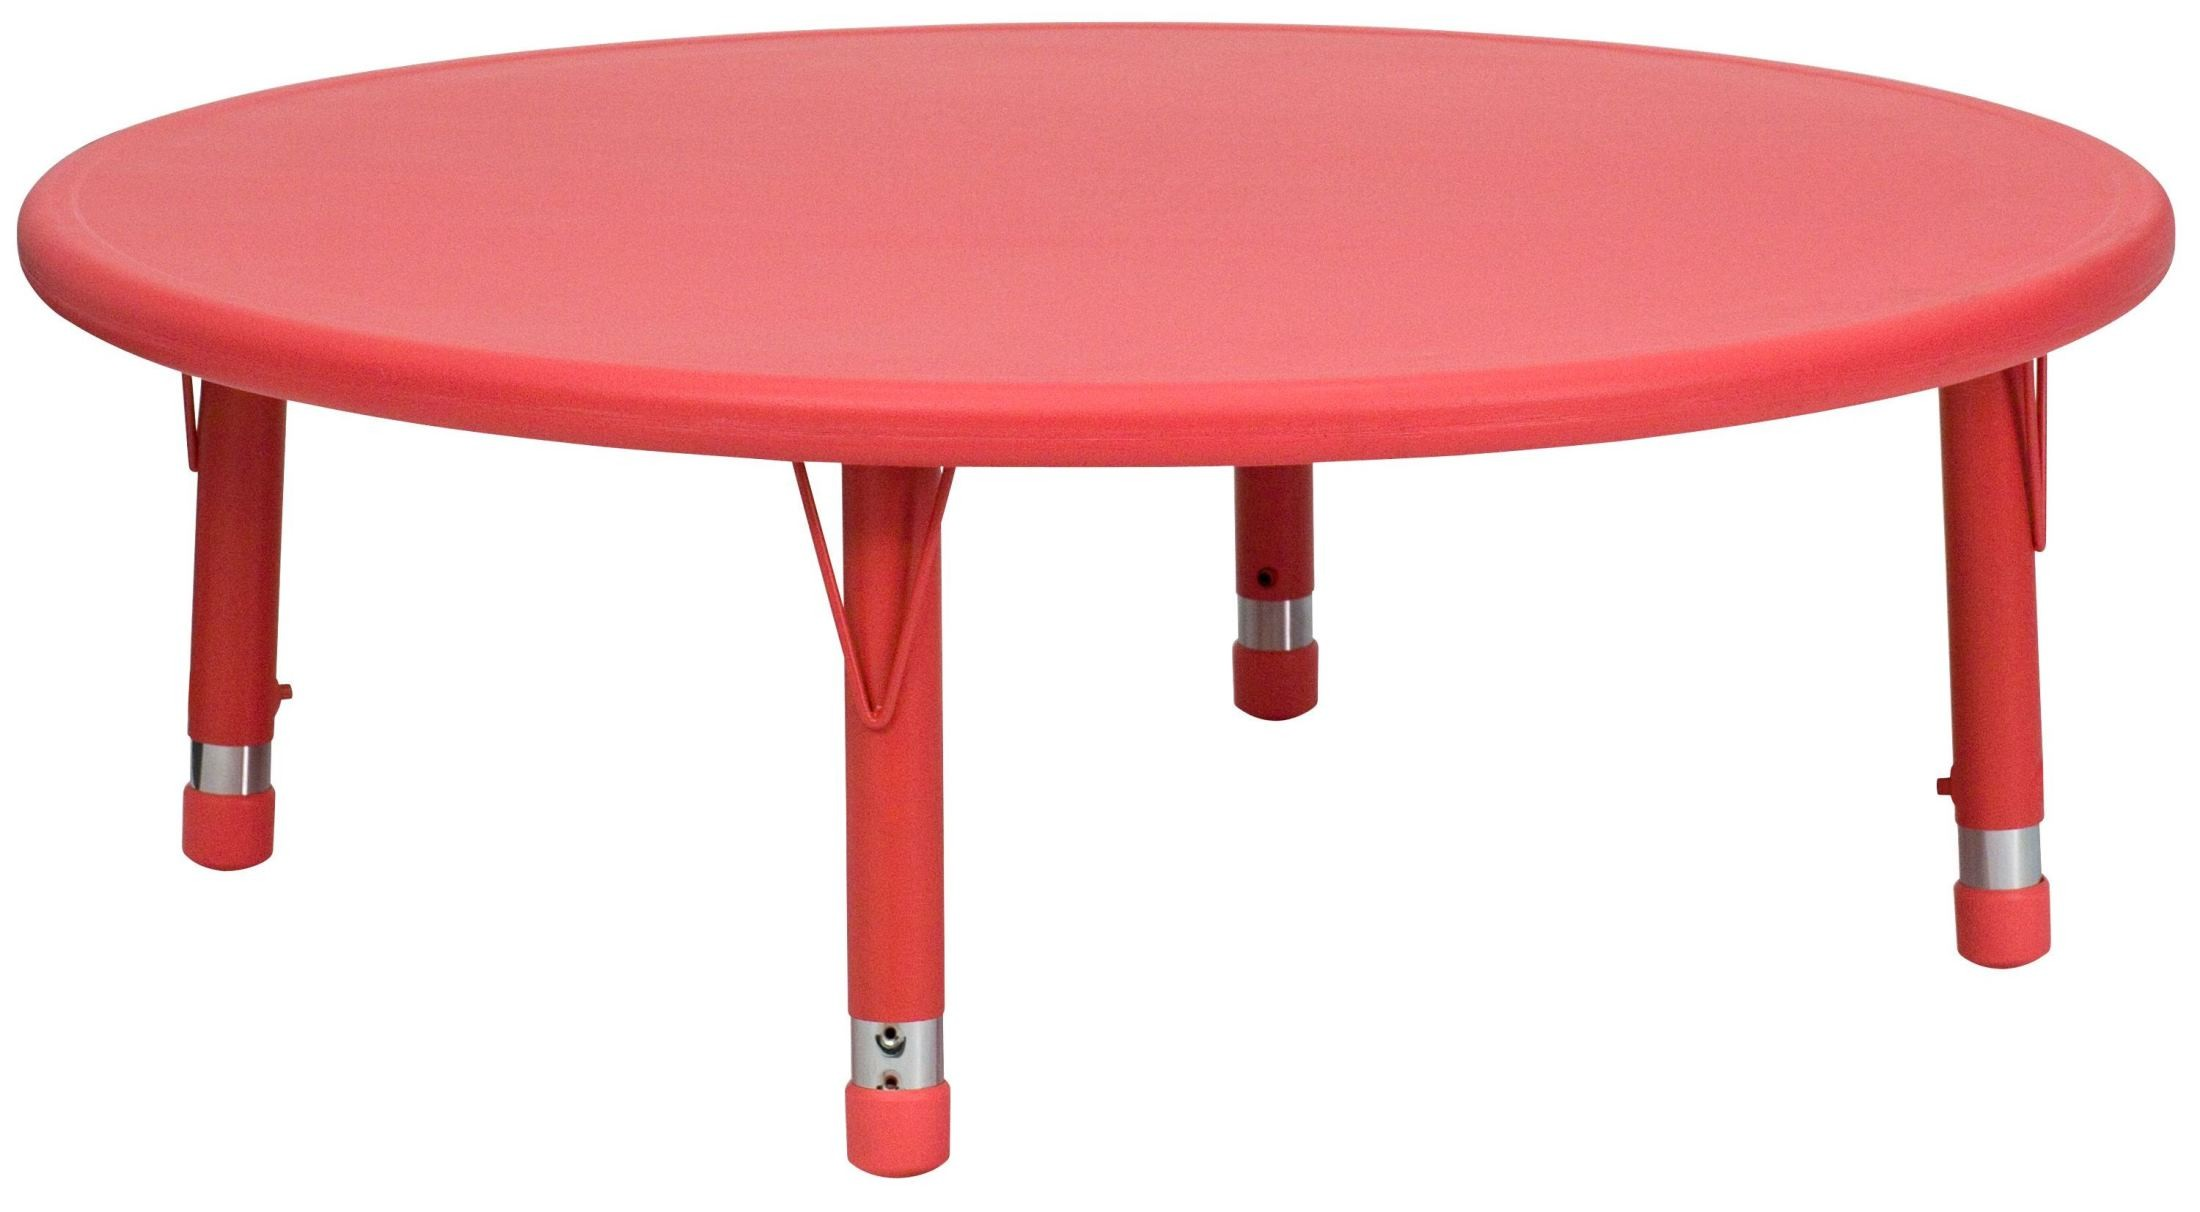 Adjustable Height Activity Table 45 Quot Round Height Adjustable Red Plastic Activity Table